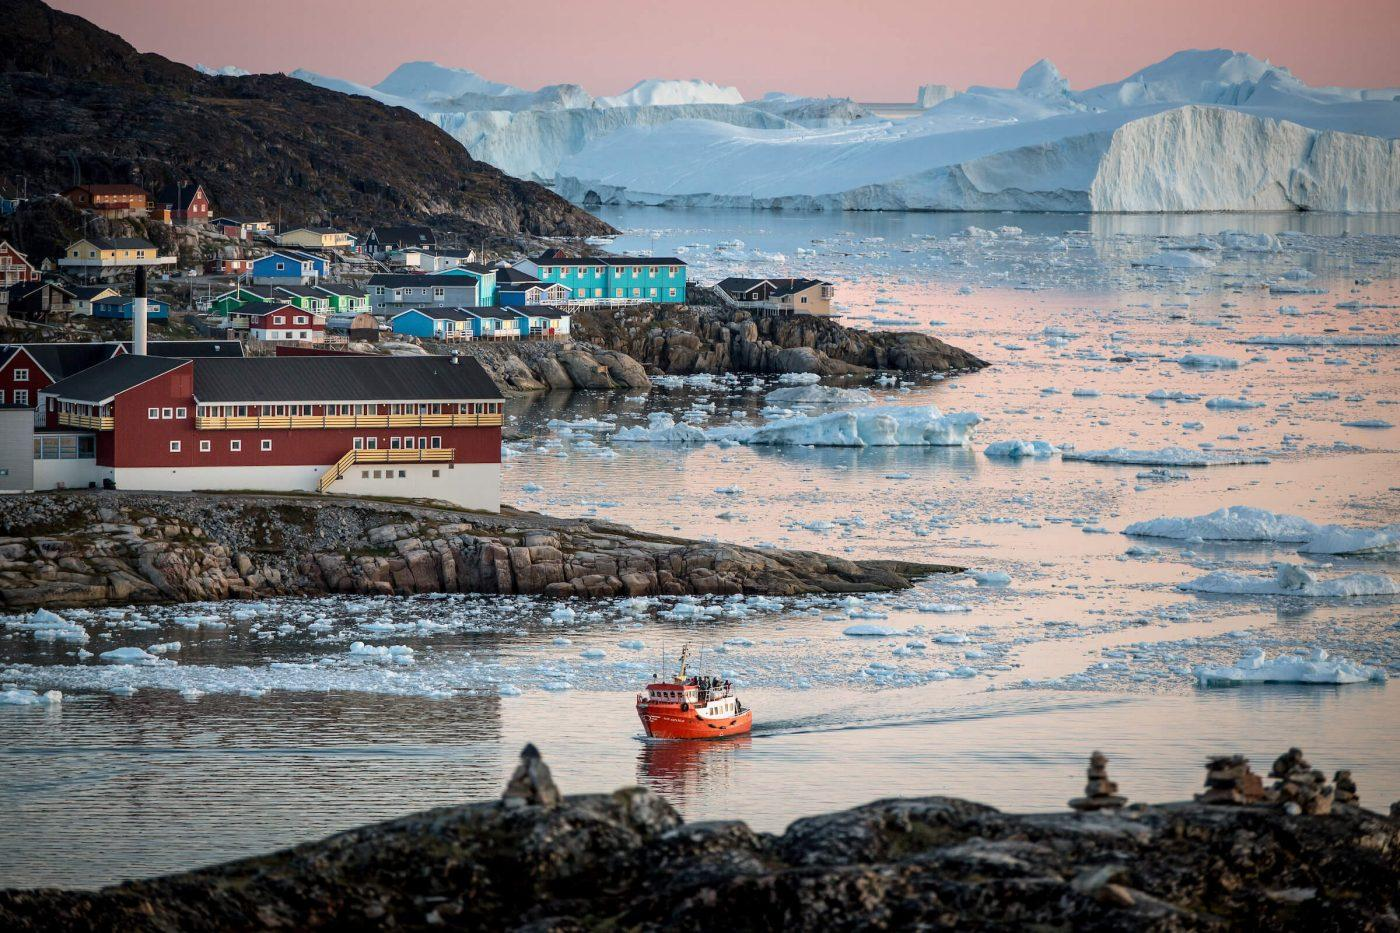 A passenger boat near Ilulissat and the ice fjord in Greenland. By Mads Pihl